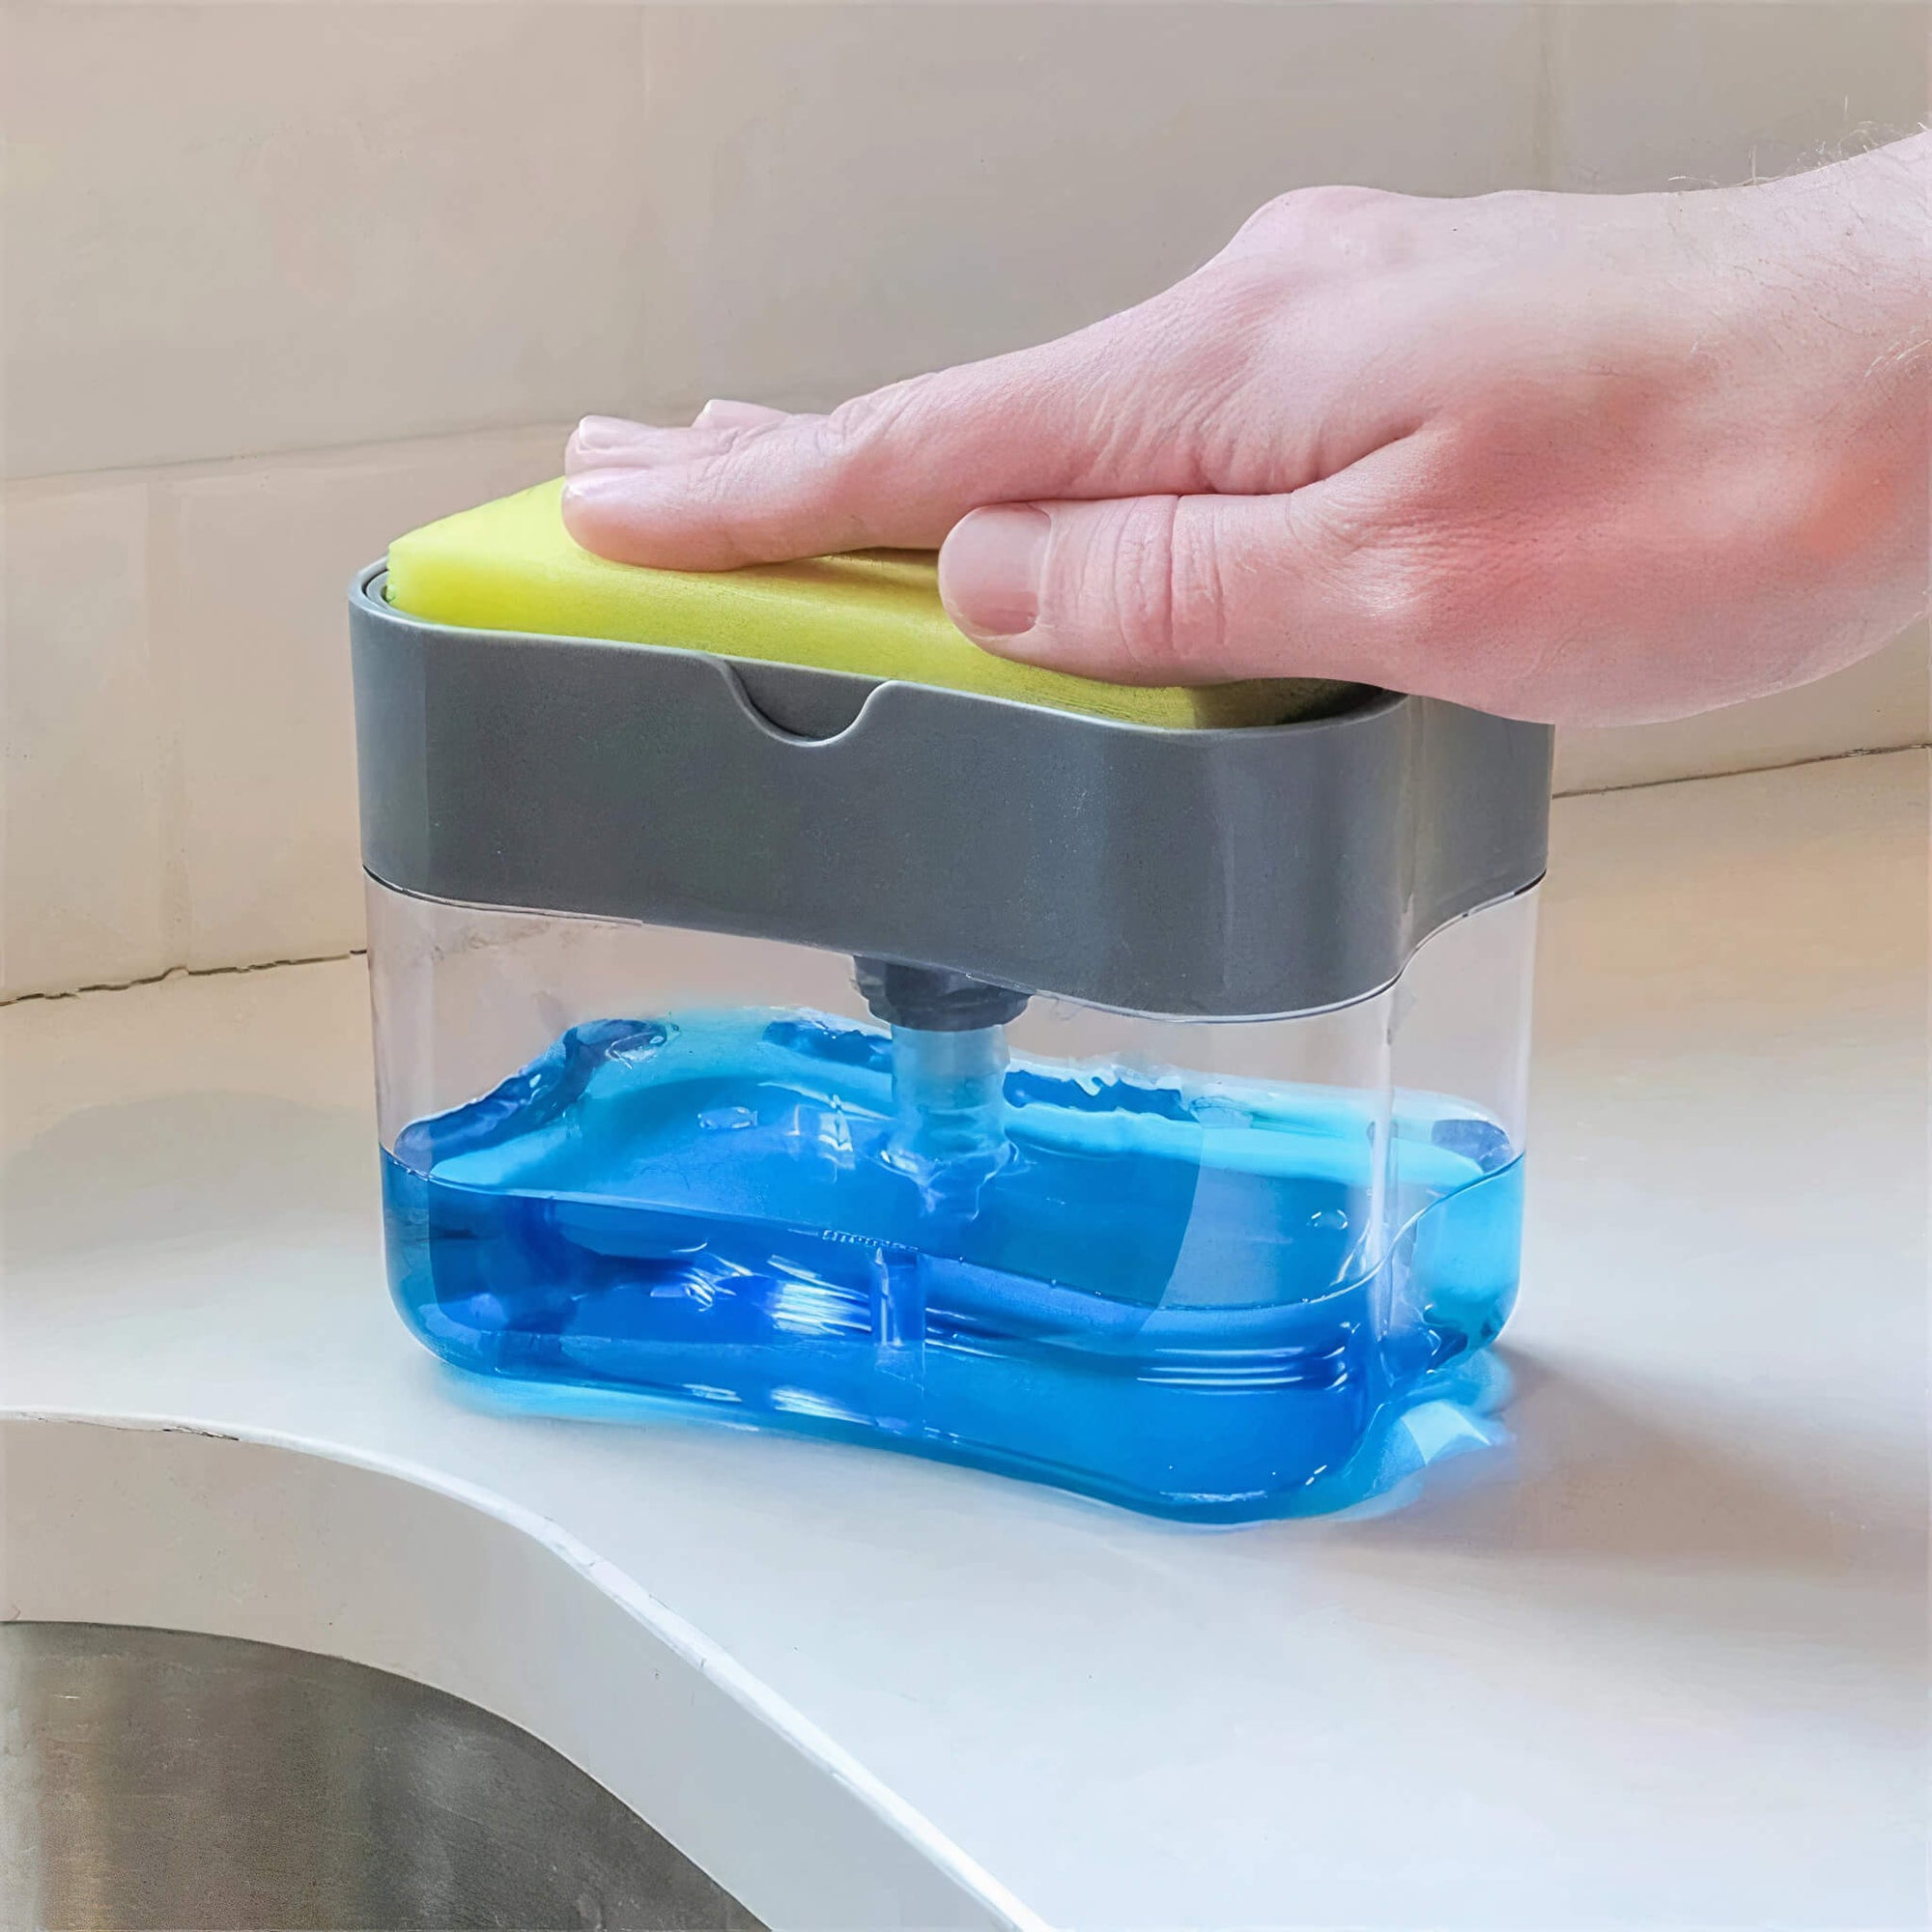 2 in 1 Soap Pump (Buy 2 Free Shipping)